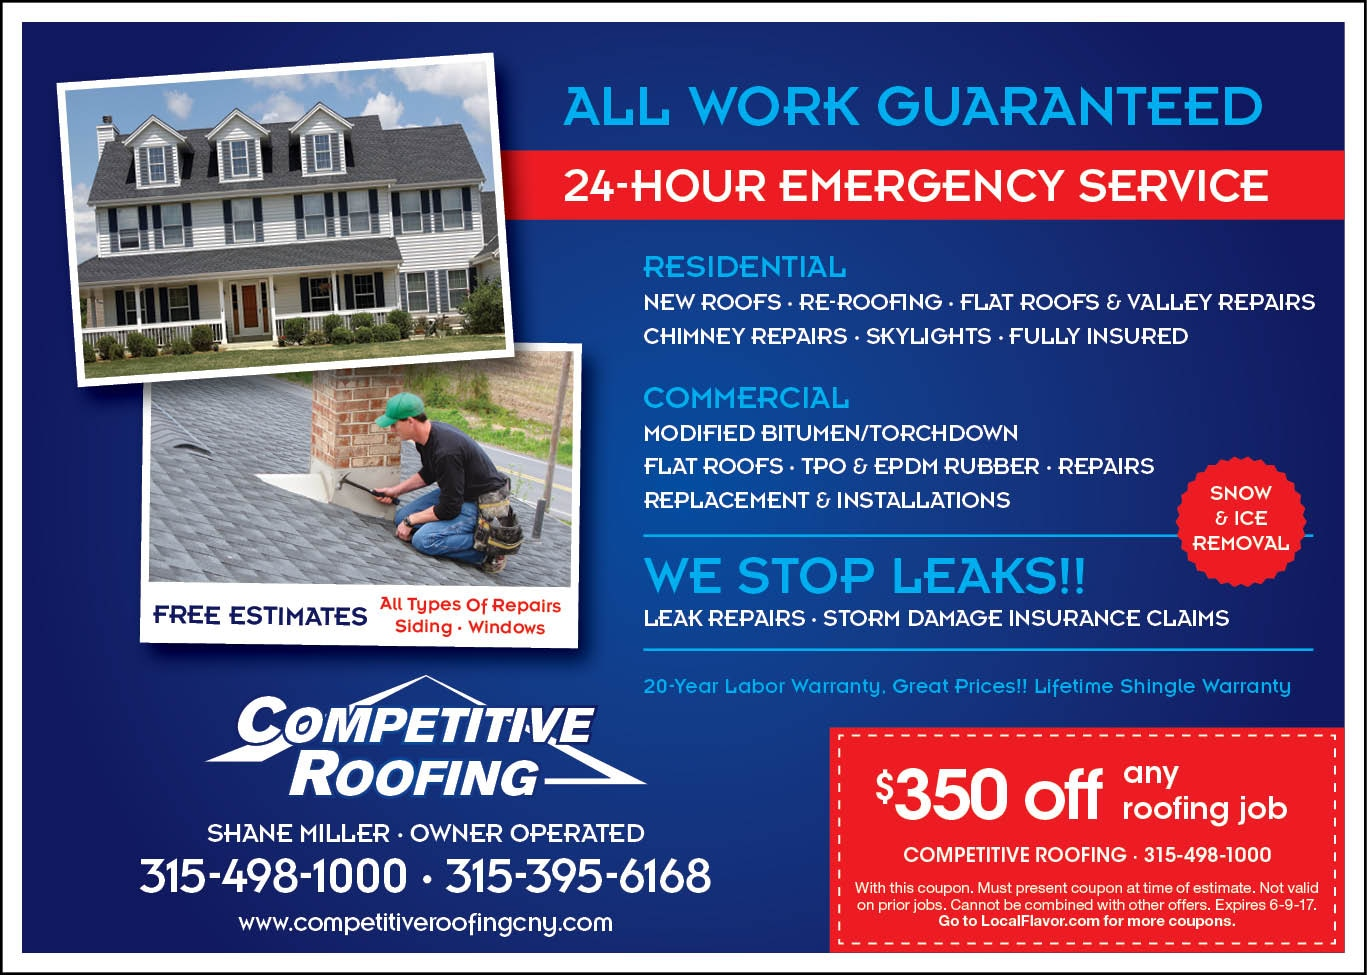 COMPETITIVE ROOFING